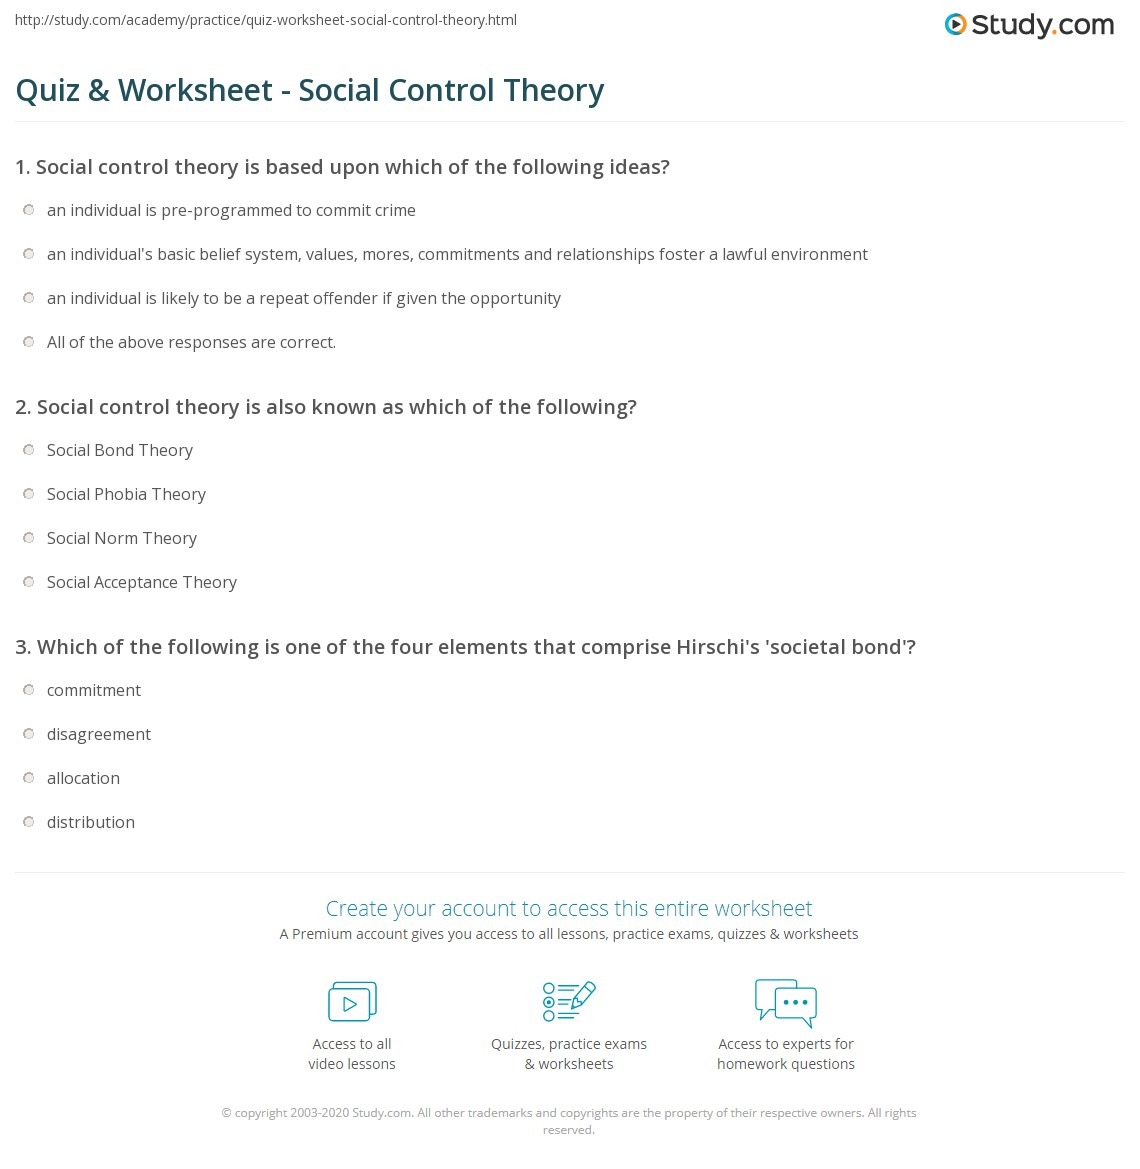 quiz worksheet social control theory. Black Bedroom Furniture Sets. Home Design Ideas